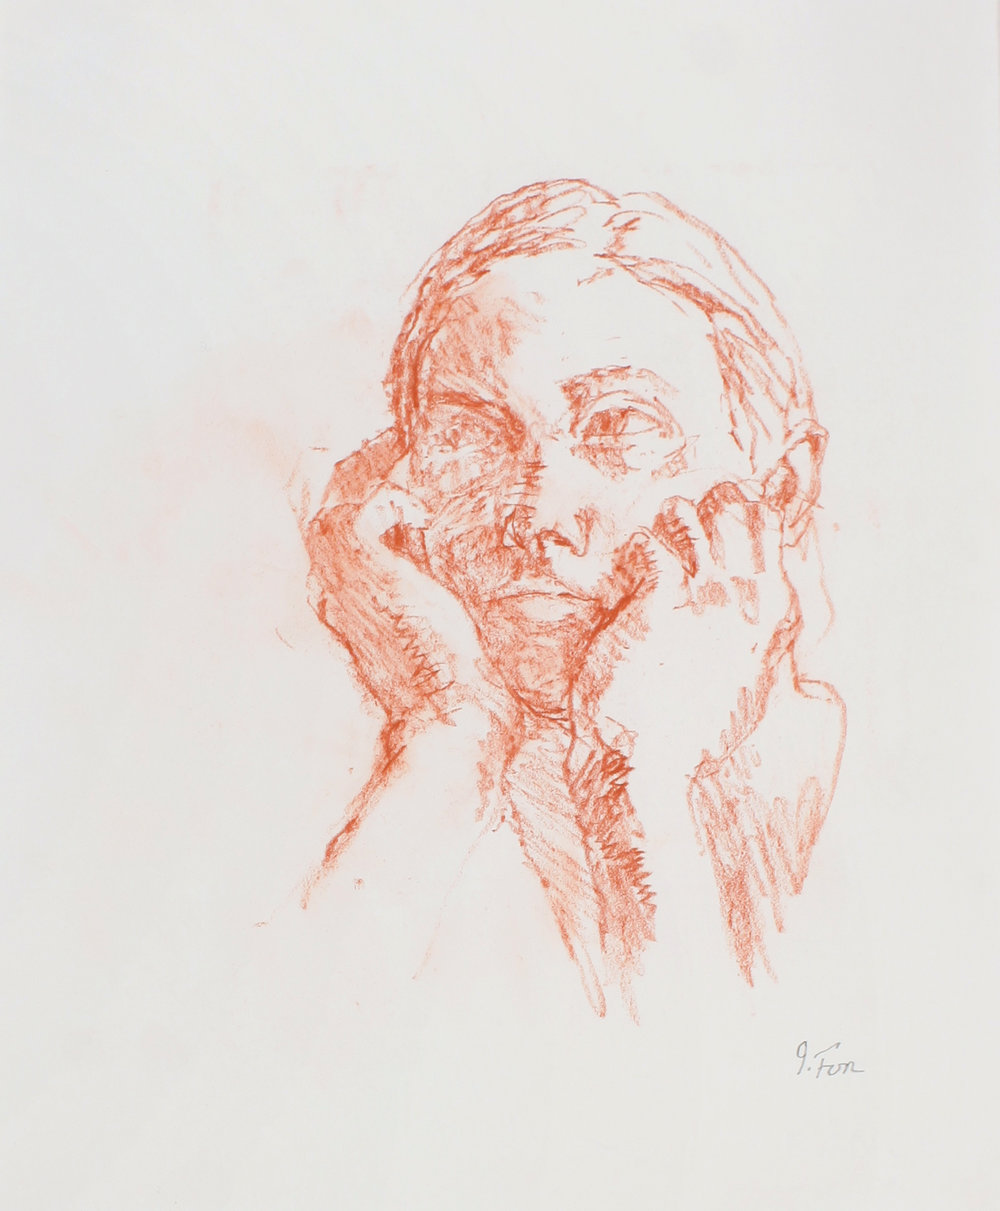 2000_Head_in_Hands_red_conte_on_paper_15x11in_WPF562.jpg